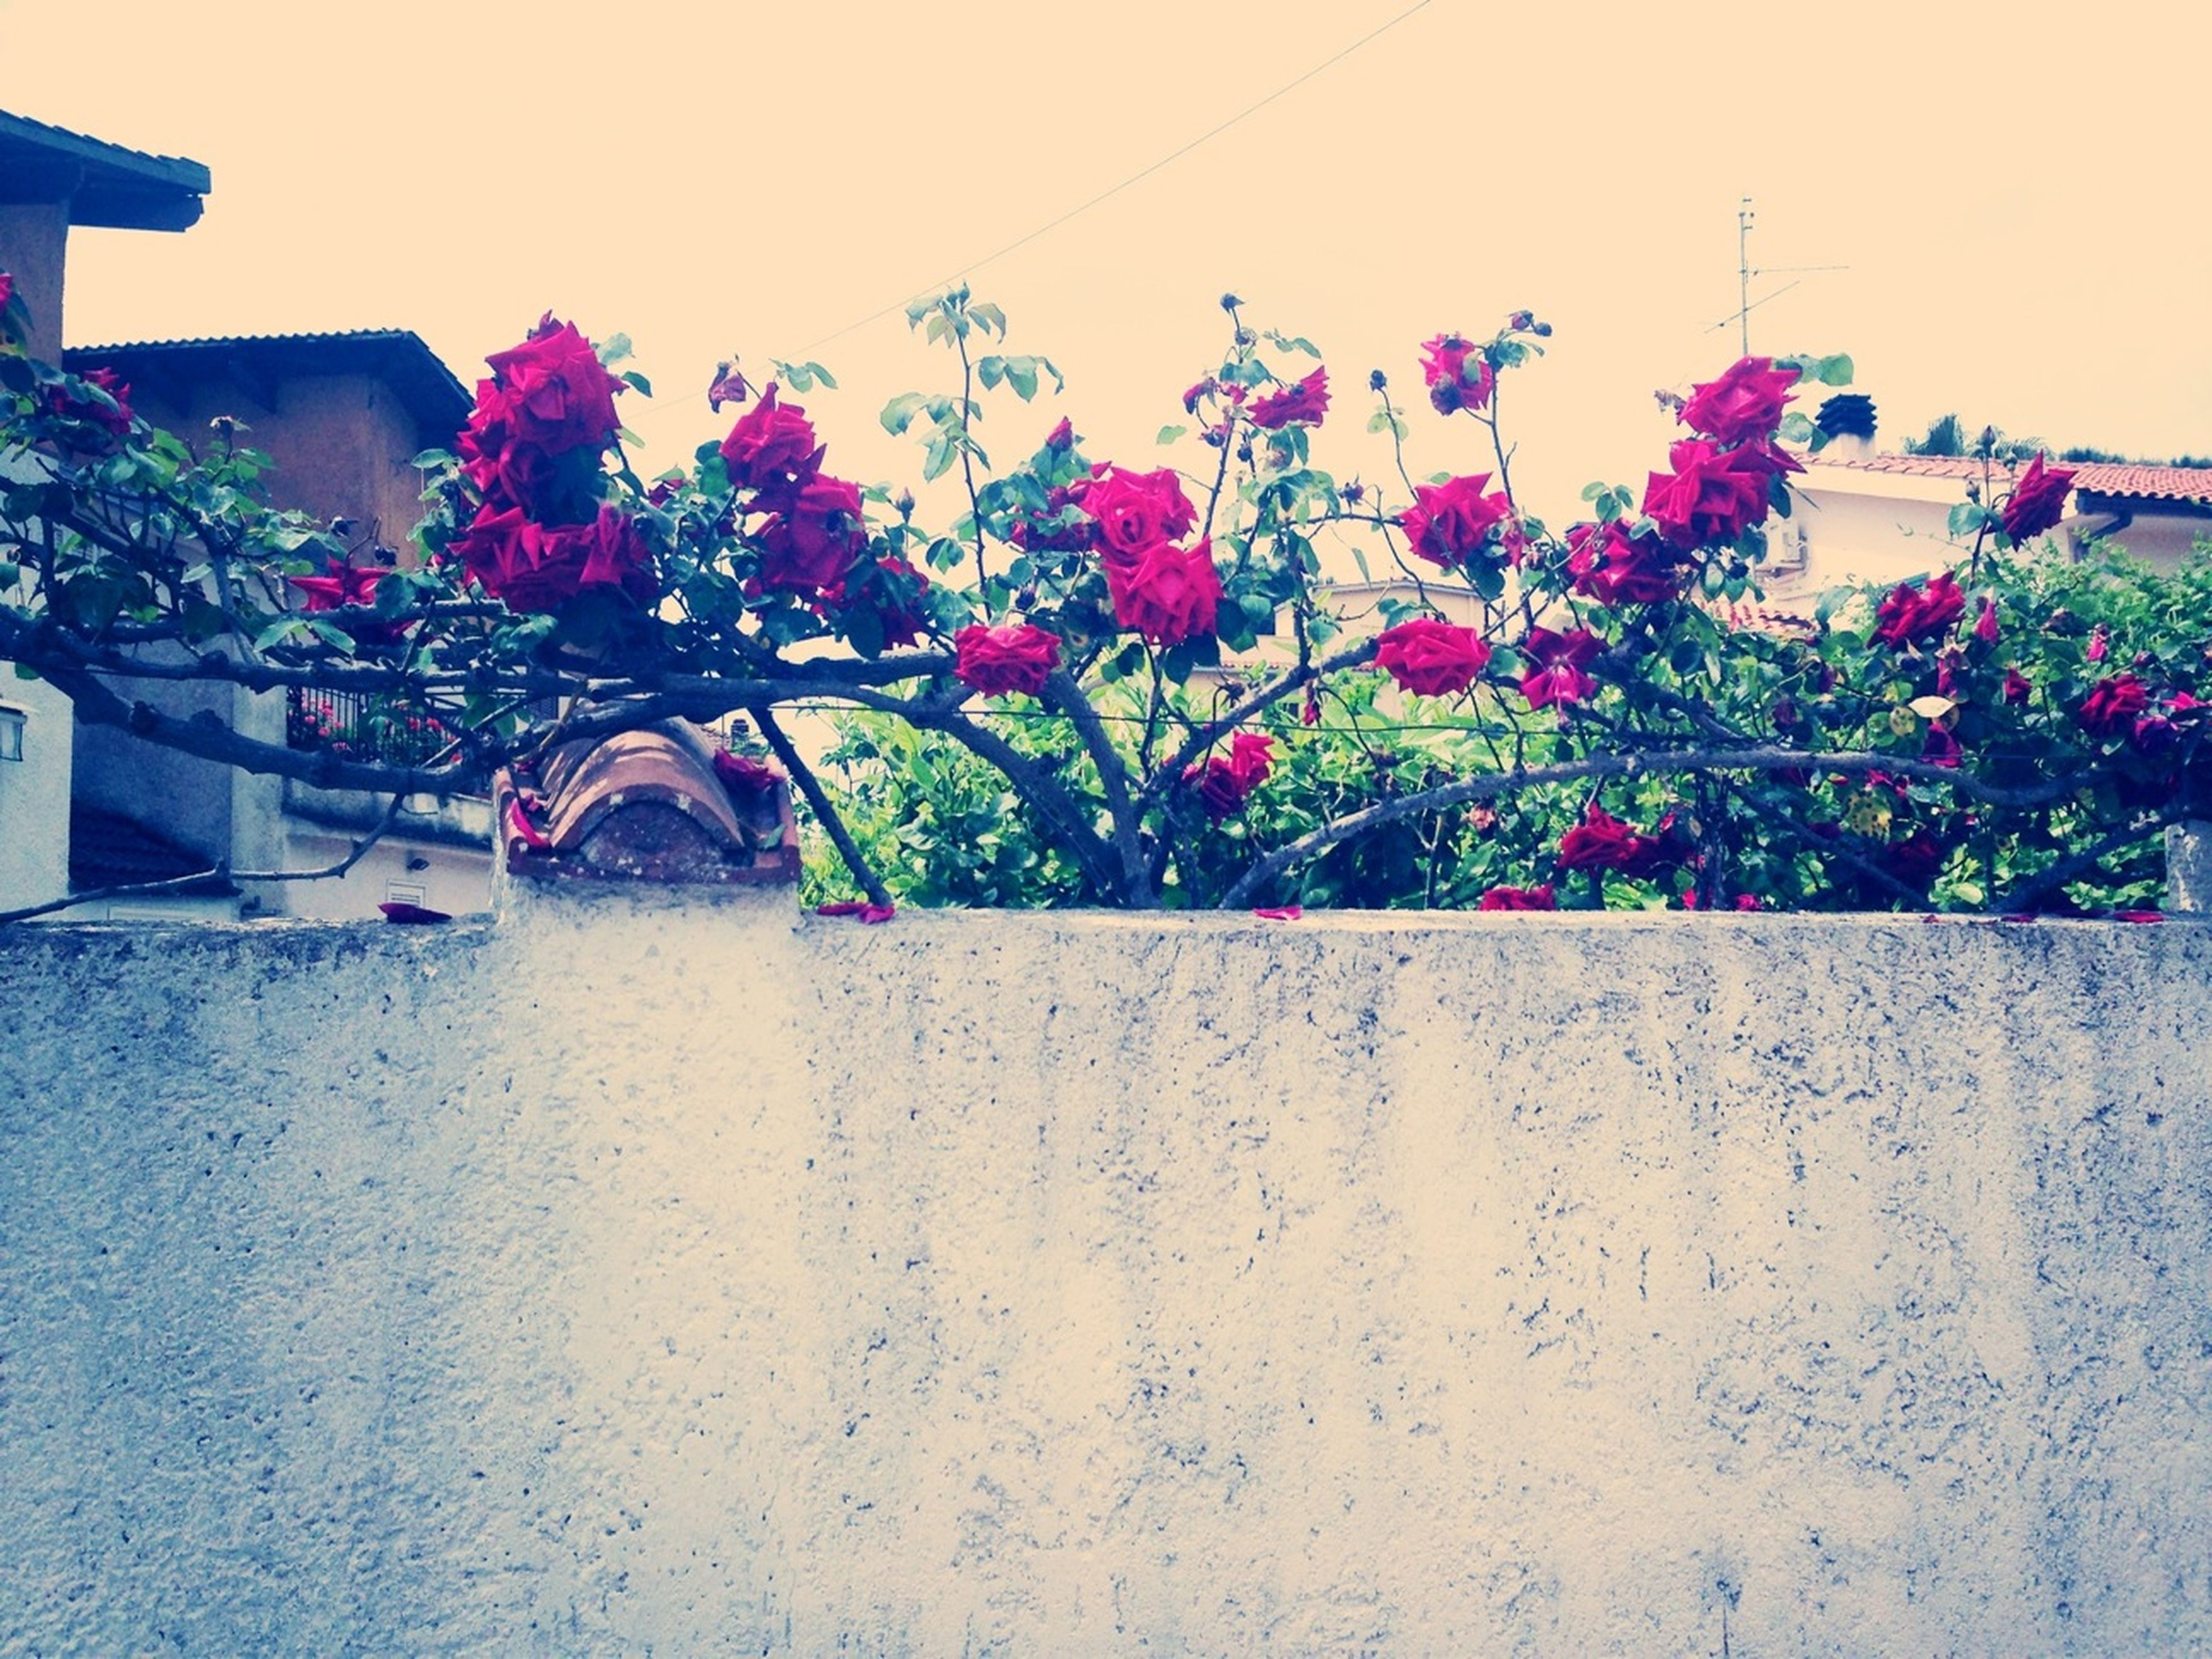 flower, built structure, building exterior, architecture, fragility, pink color, freshness, plant, growth, clear sky, blooming, wall - building feature, nature, petal, potted plant, beauty in nature, day, house, no people, sunlight